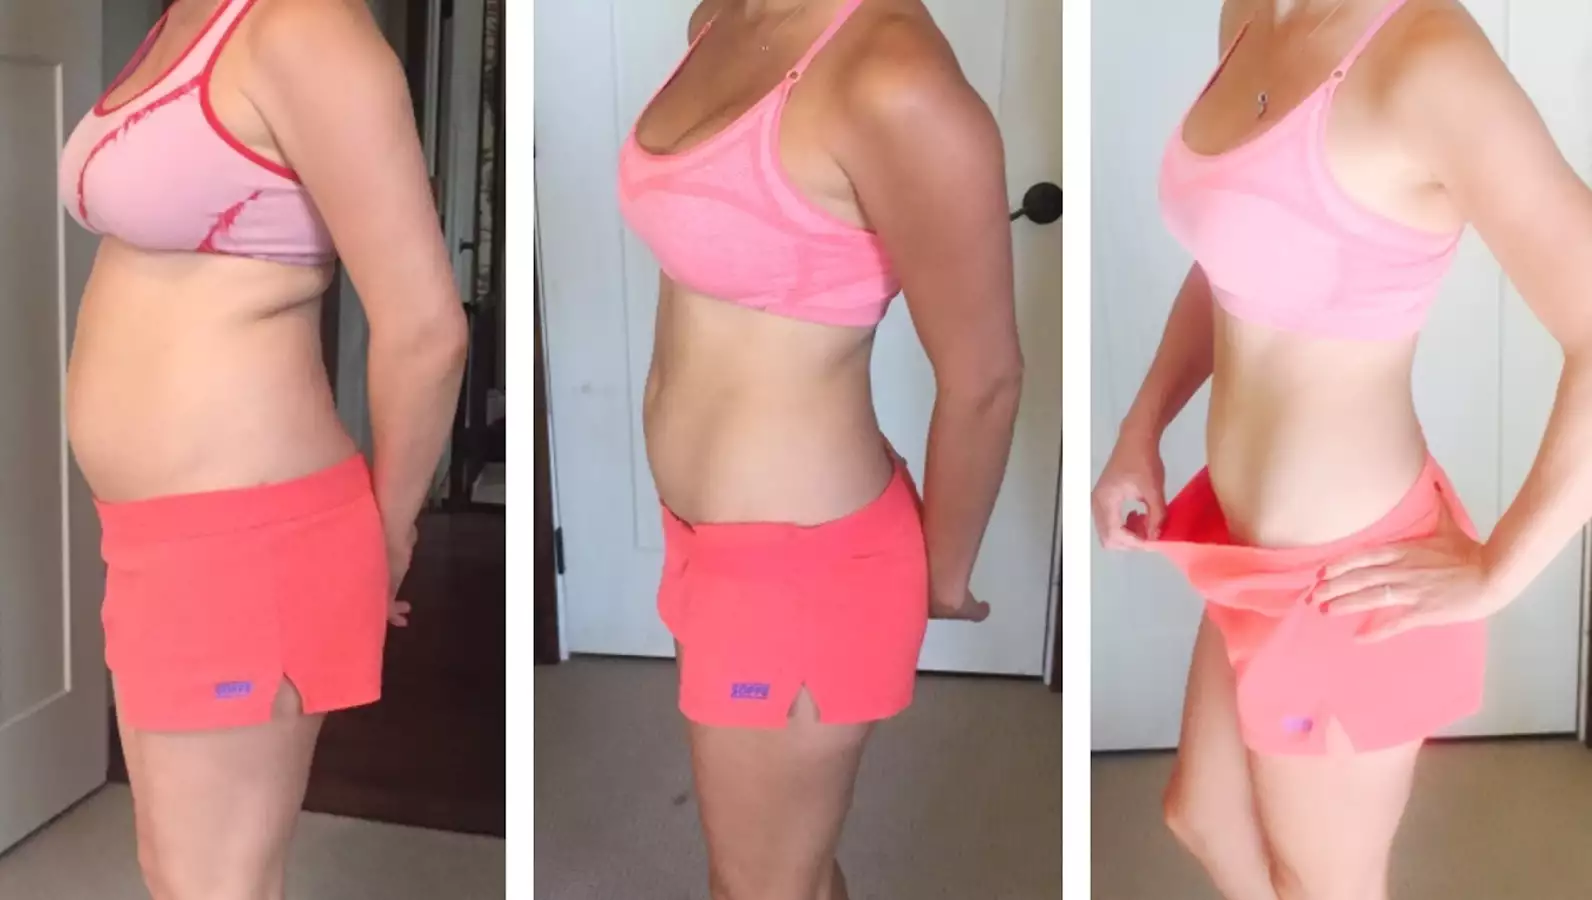 10 Days Diet Plan To Lose Weight AS Well As Belly Fat According To A Nutritionist